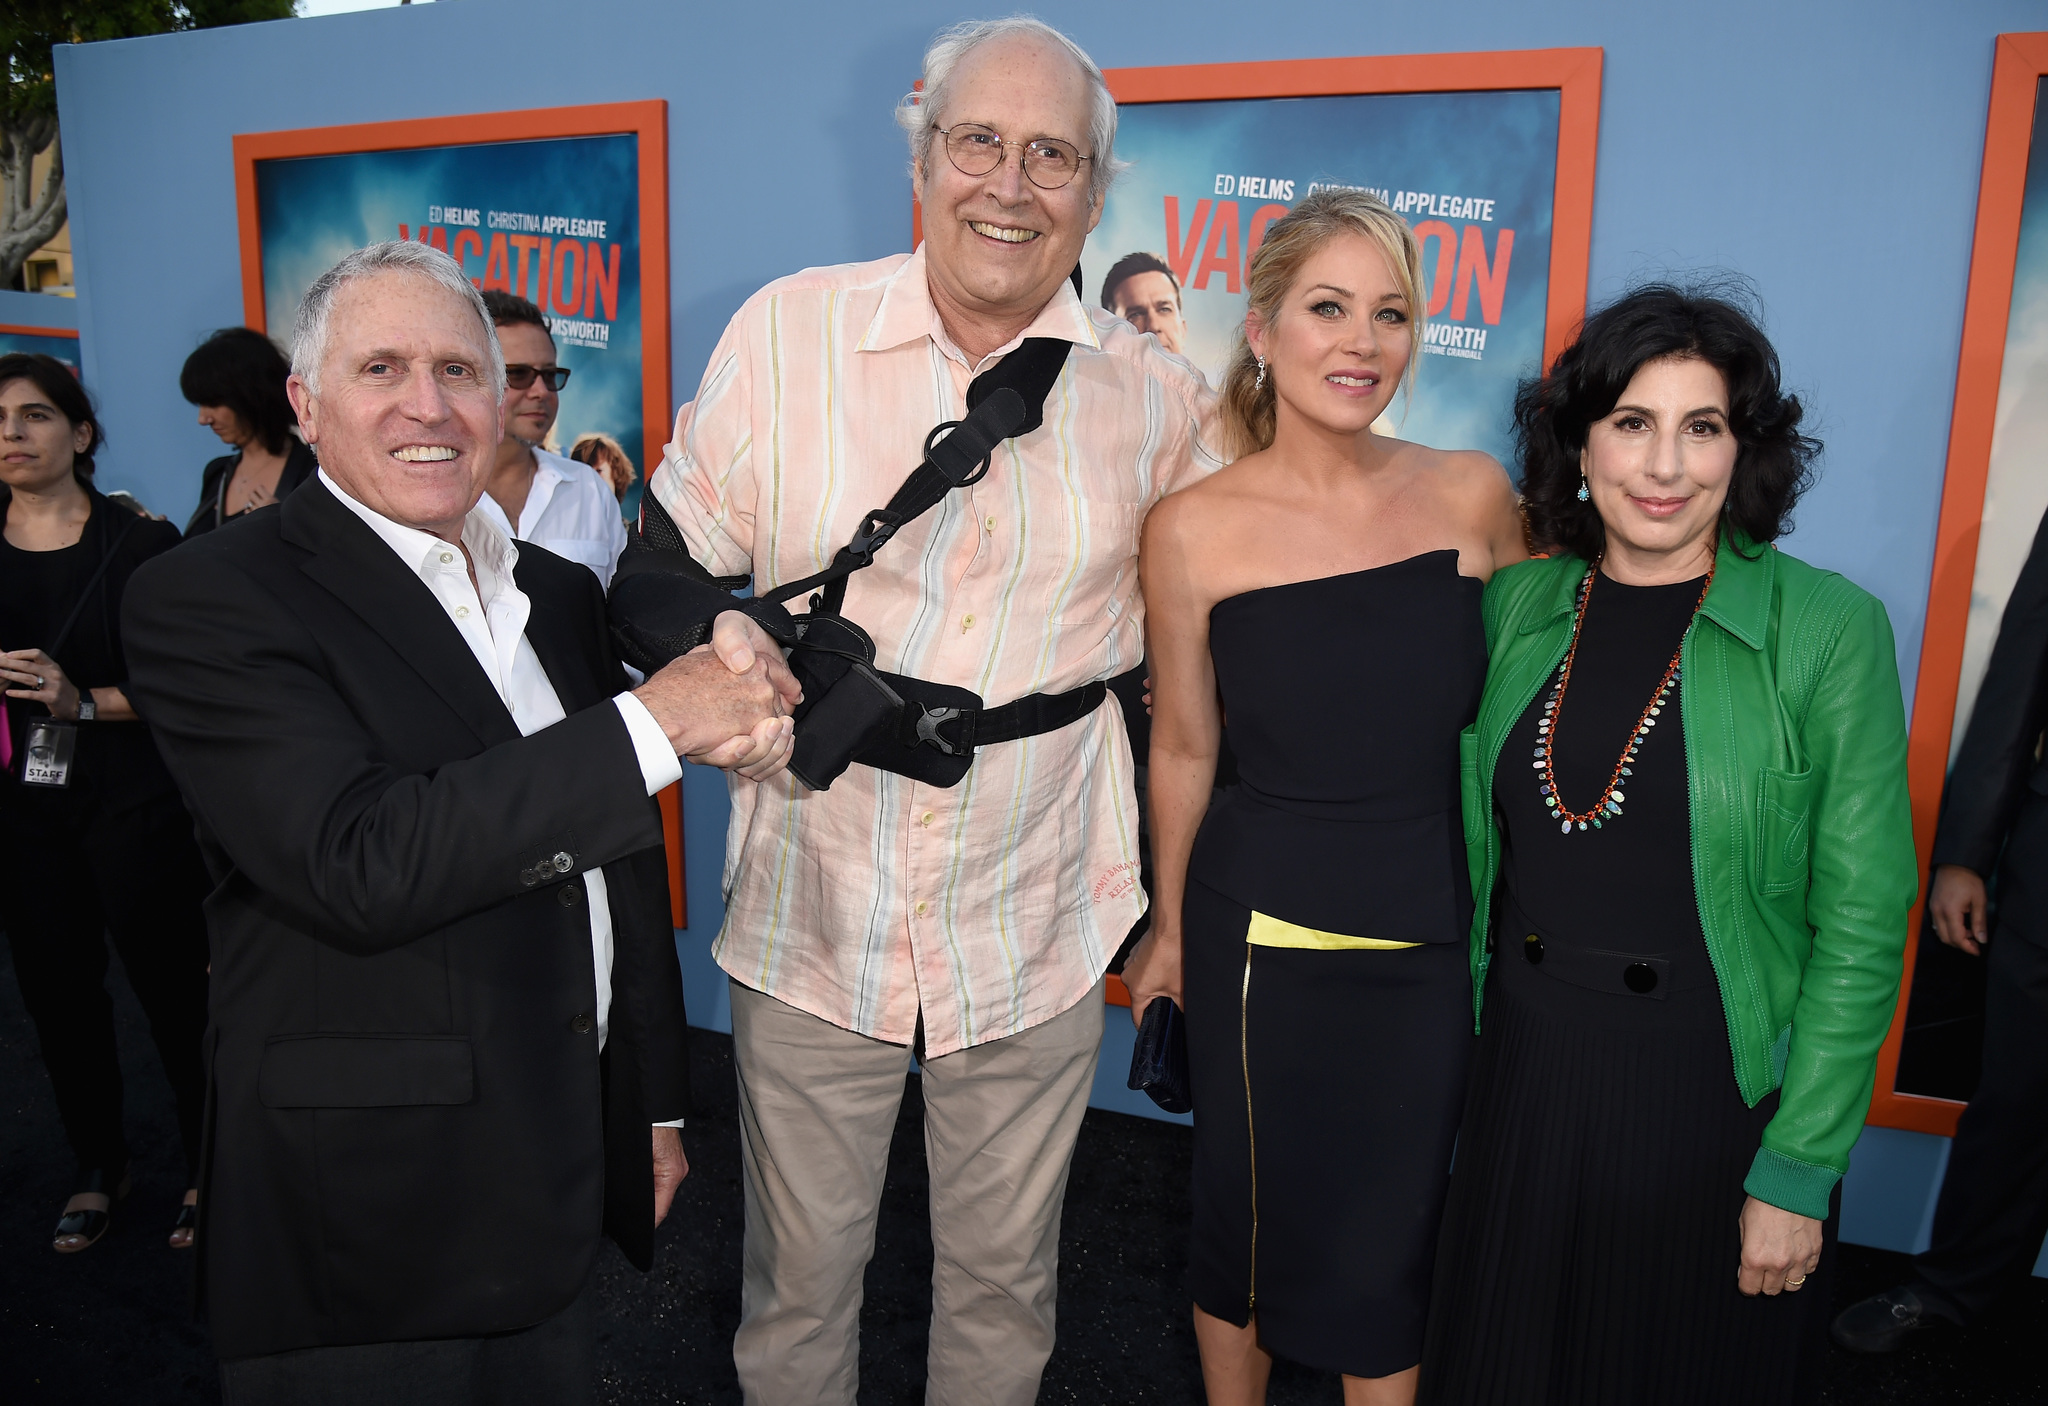 Chevy Chase, Christina Applegate, Dan Fellman, and Sue Kroll at an event for Vacation (2015)